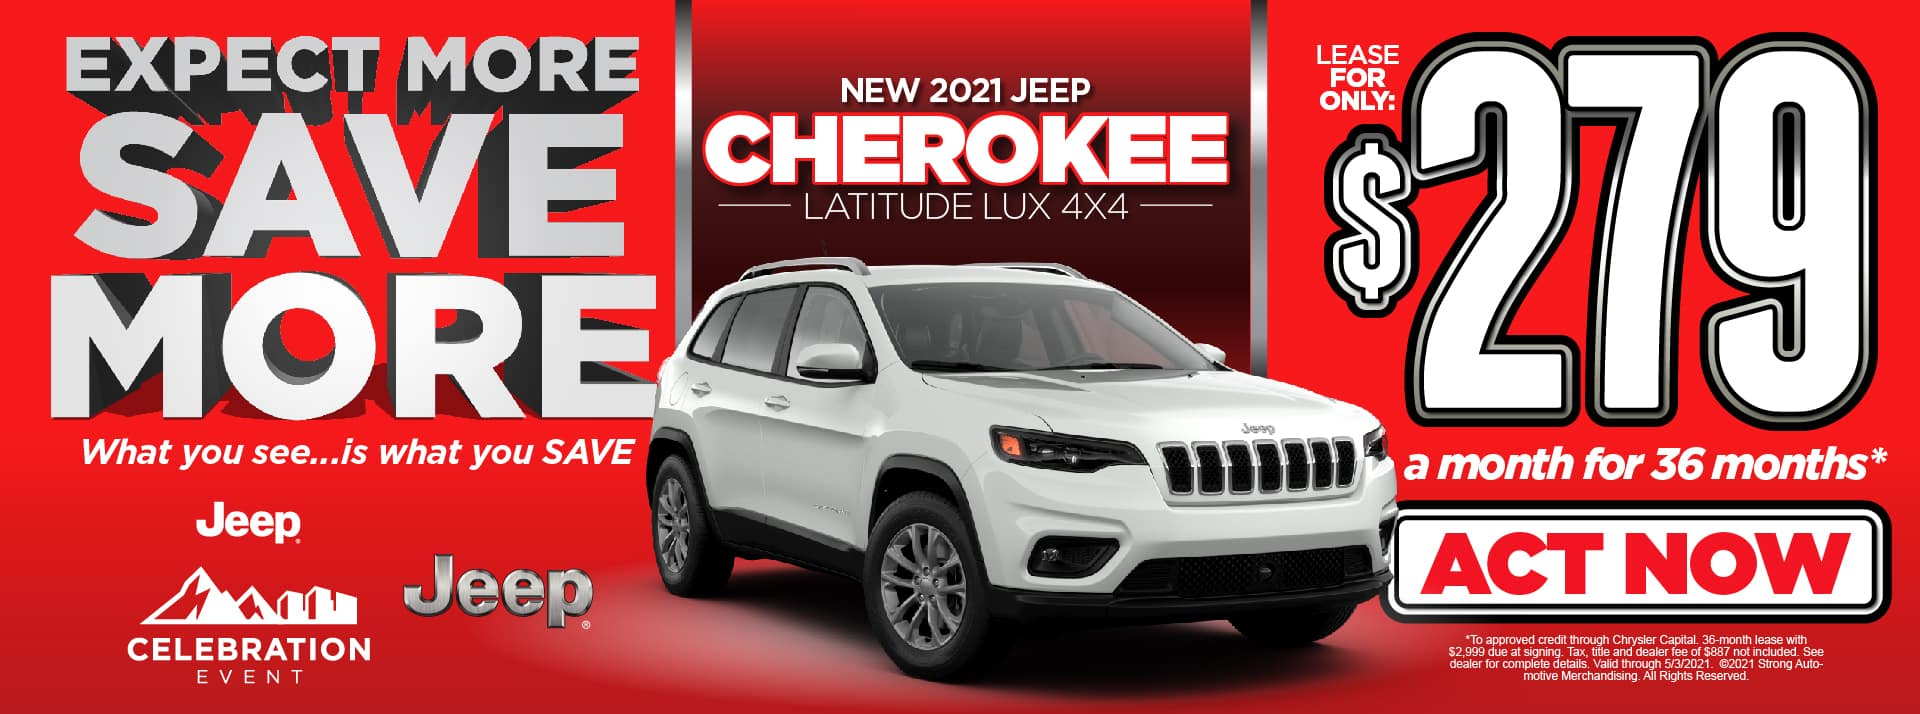 NEW 2021 JEEP CHEROKEE LATITUDE LEASE FOR $279/MO* ACT NOW